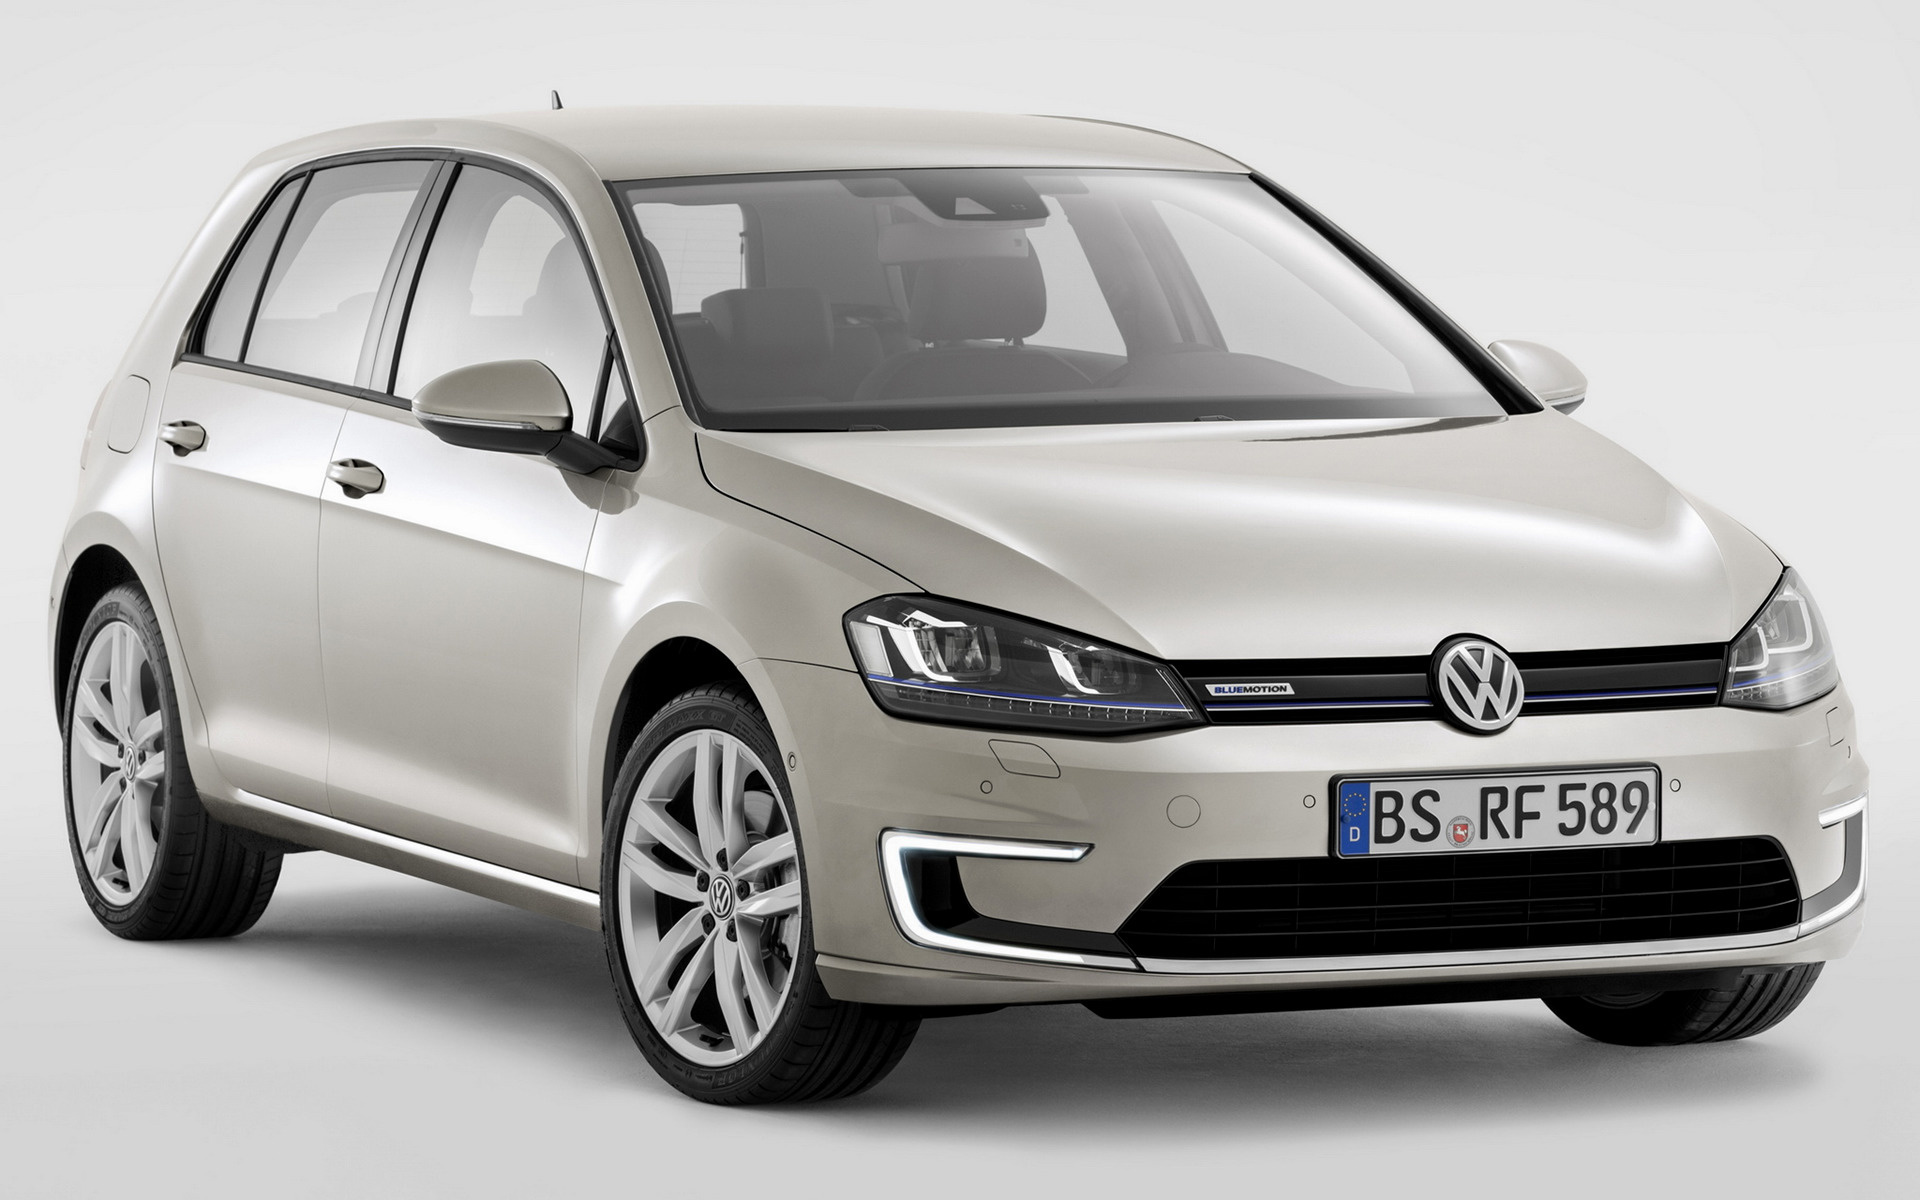 2019 Volkswagen Golf BlueMotion Concept photo - 1